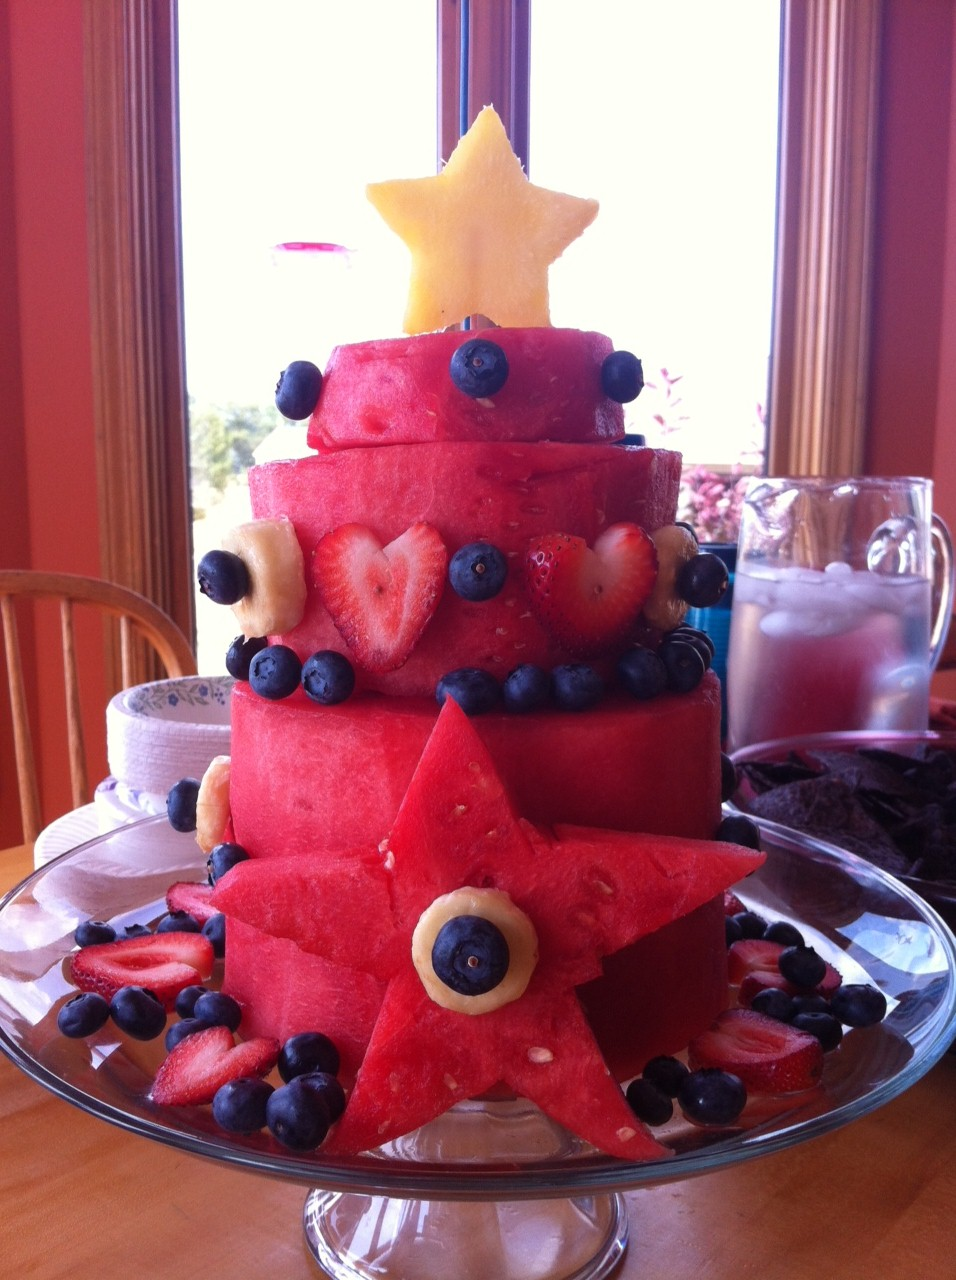 ... raw food rehab on facebook they had posted a similar watermelon cake